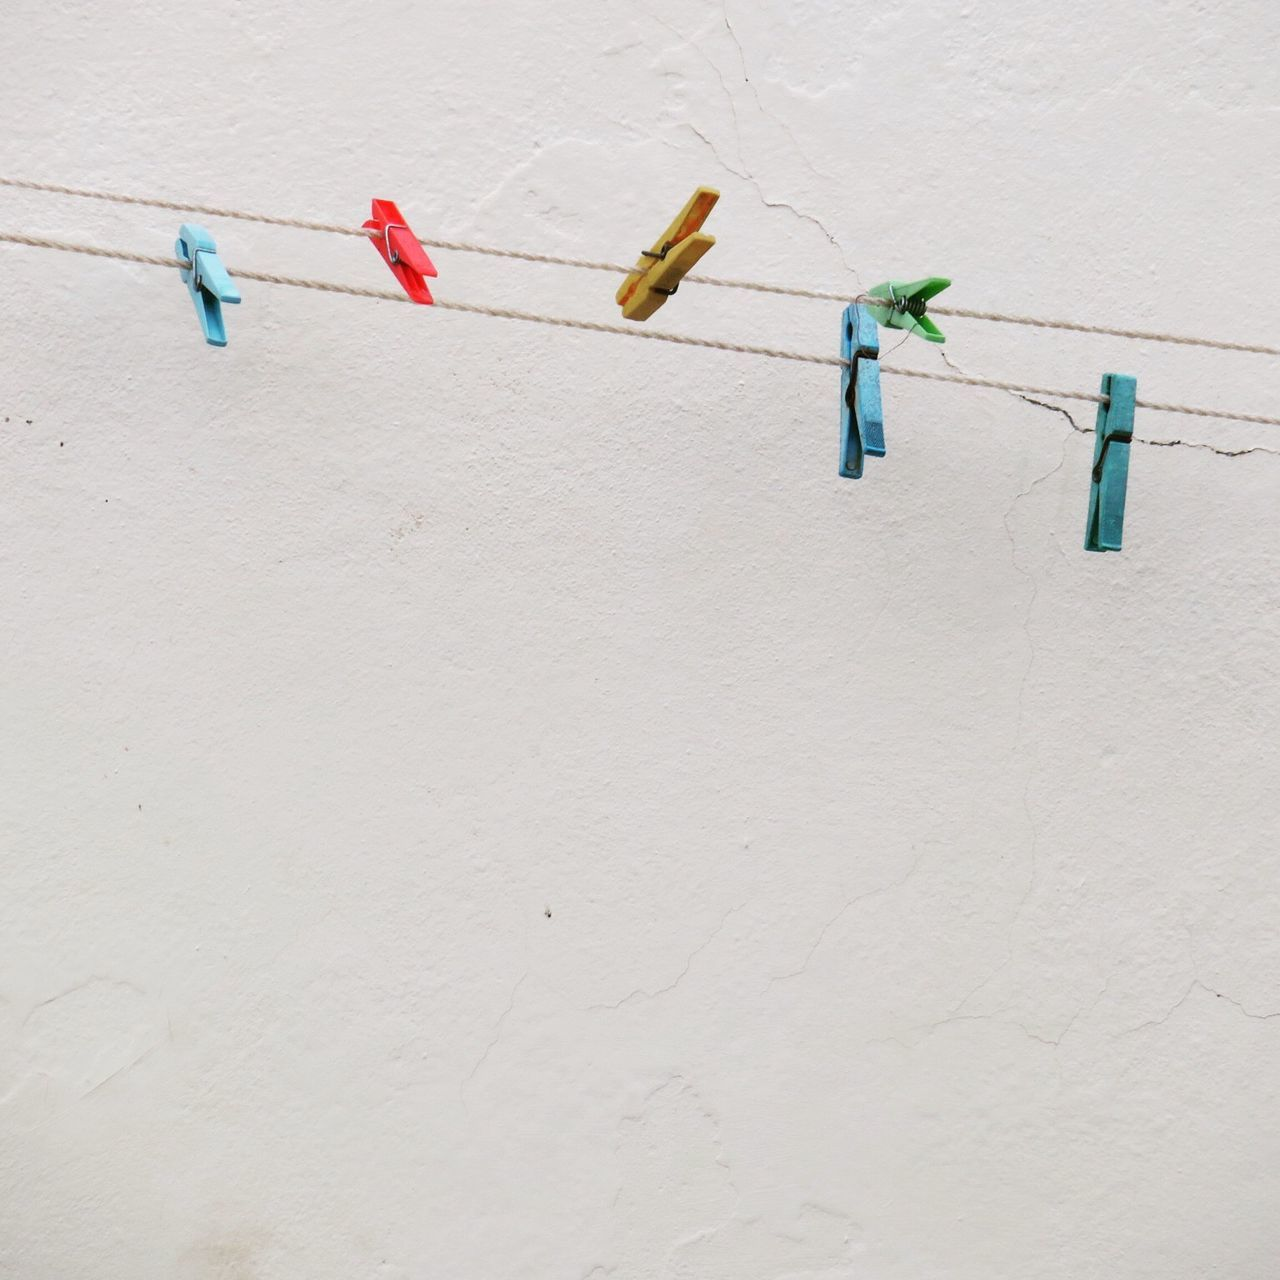 Low Angle View Of Clothespins On Rope Against Wall